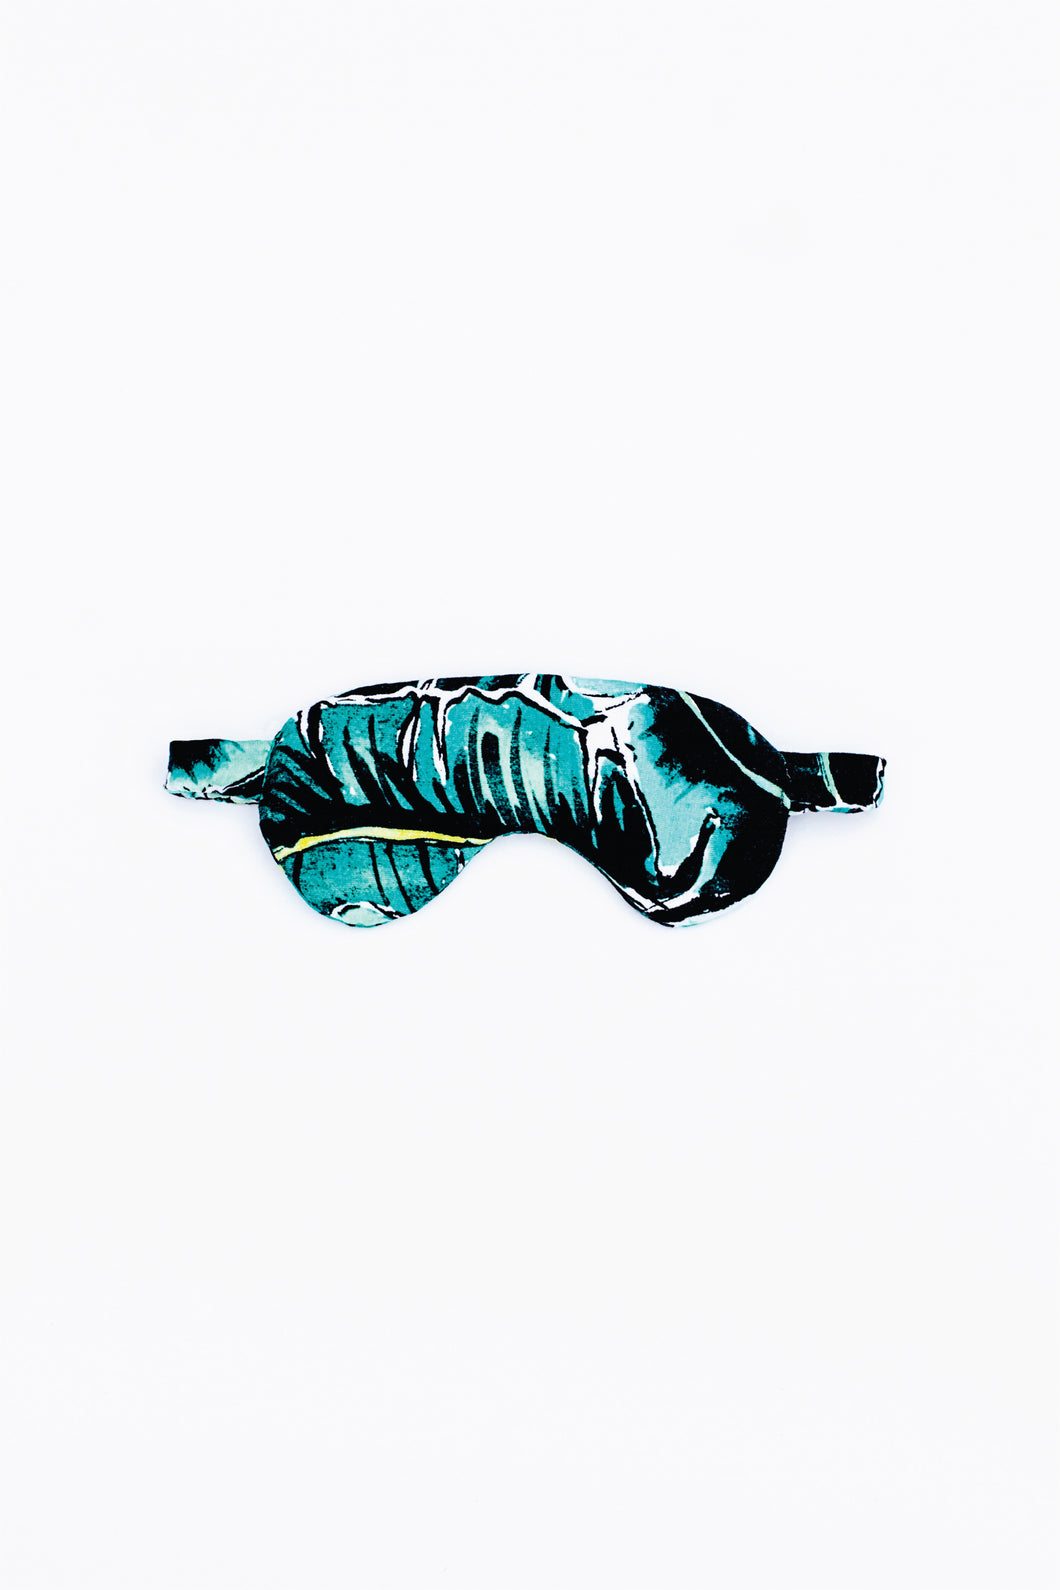 Power nap eye mask, shown in Kauai One (palm leaf) print